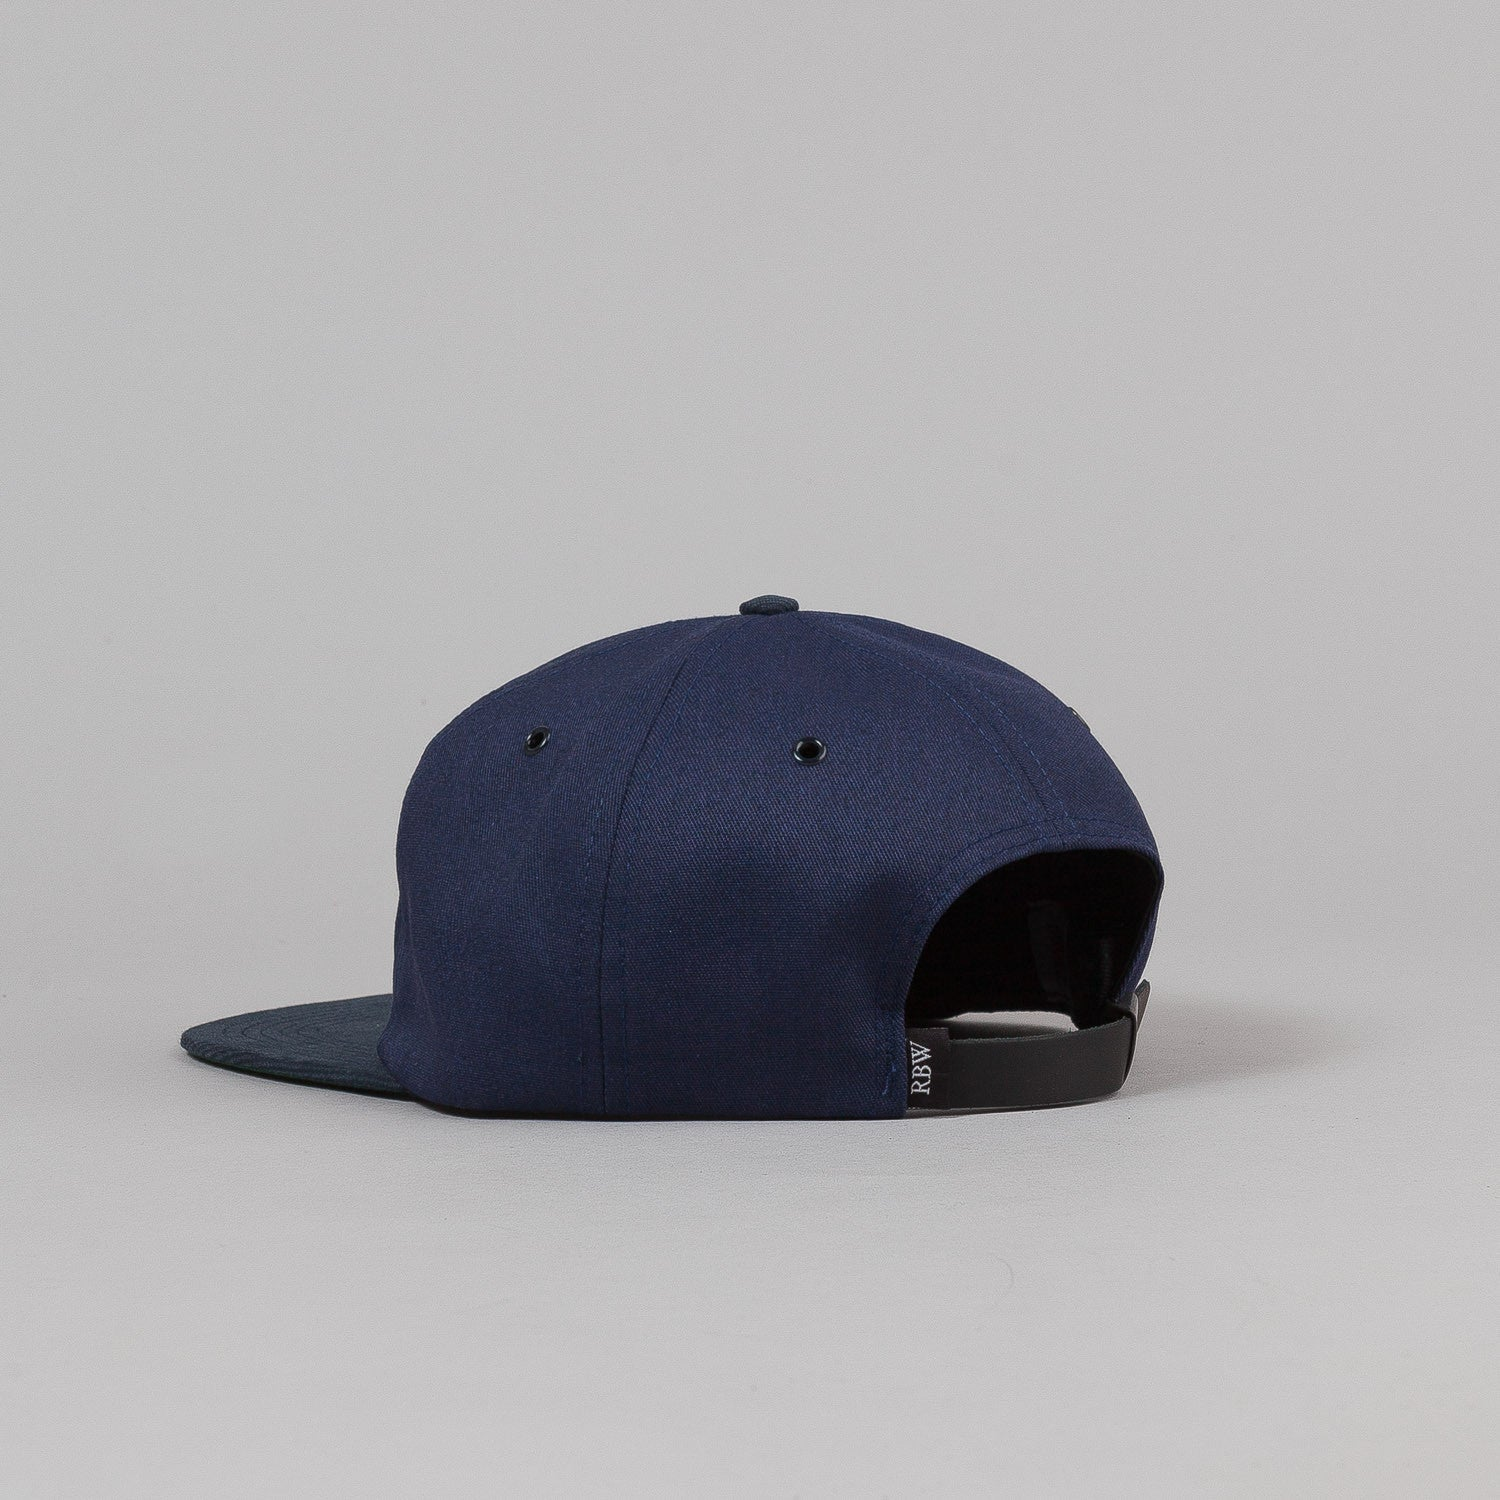 Raised By Wolves Varsity Pennant Polo Cap - Navy